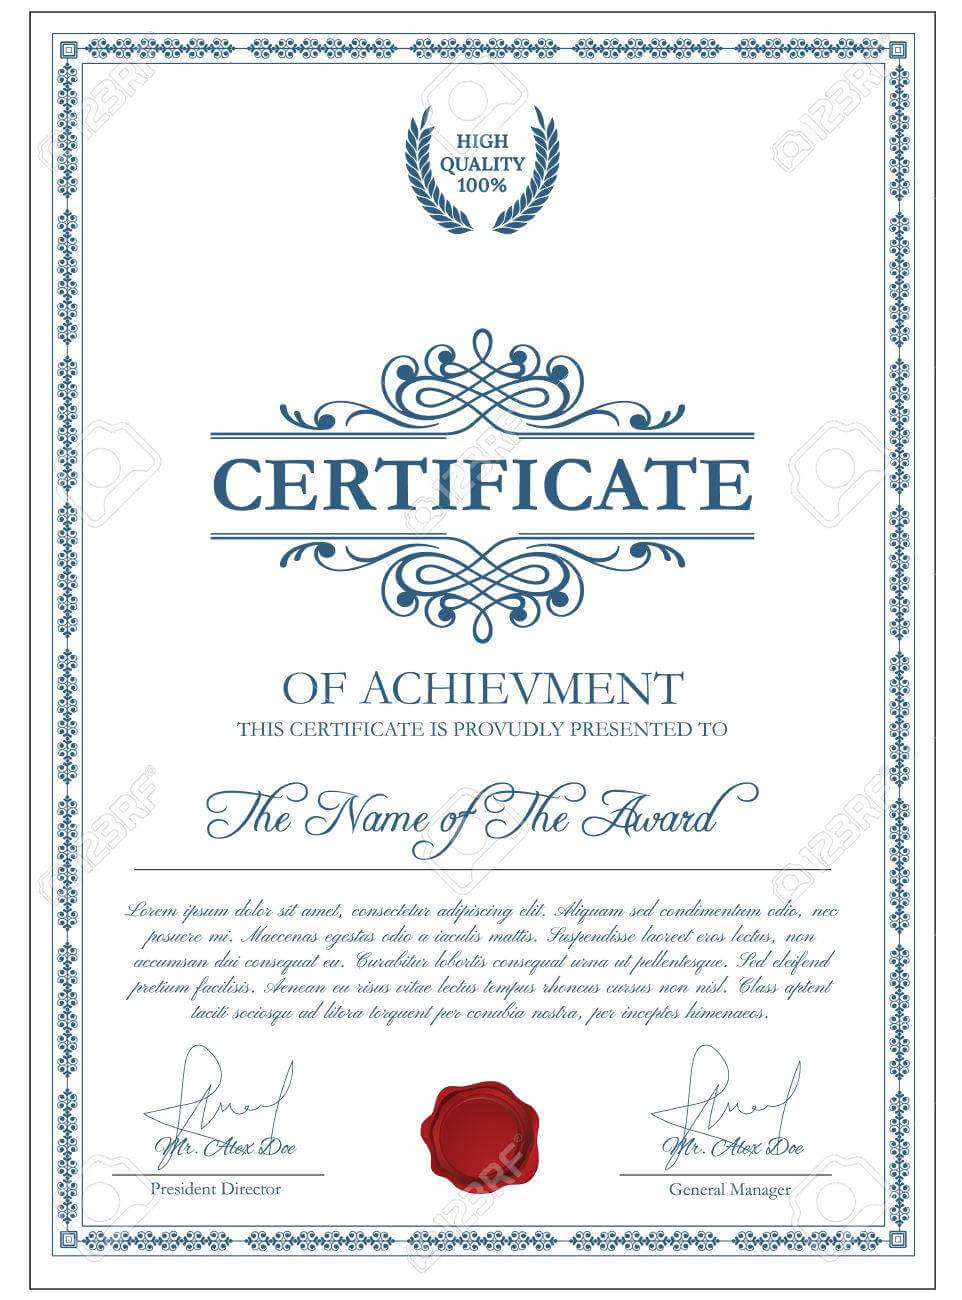 Certificate Template With Guilloche Elements. Blue Diploma Border.. For Validation Certificate Template